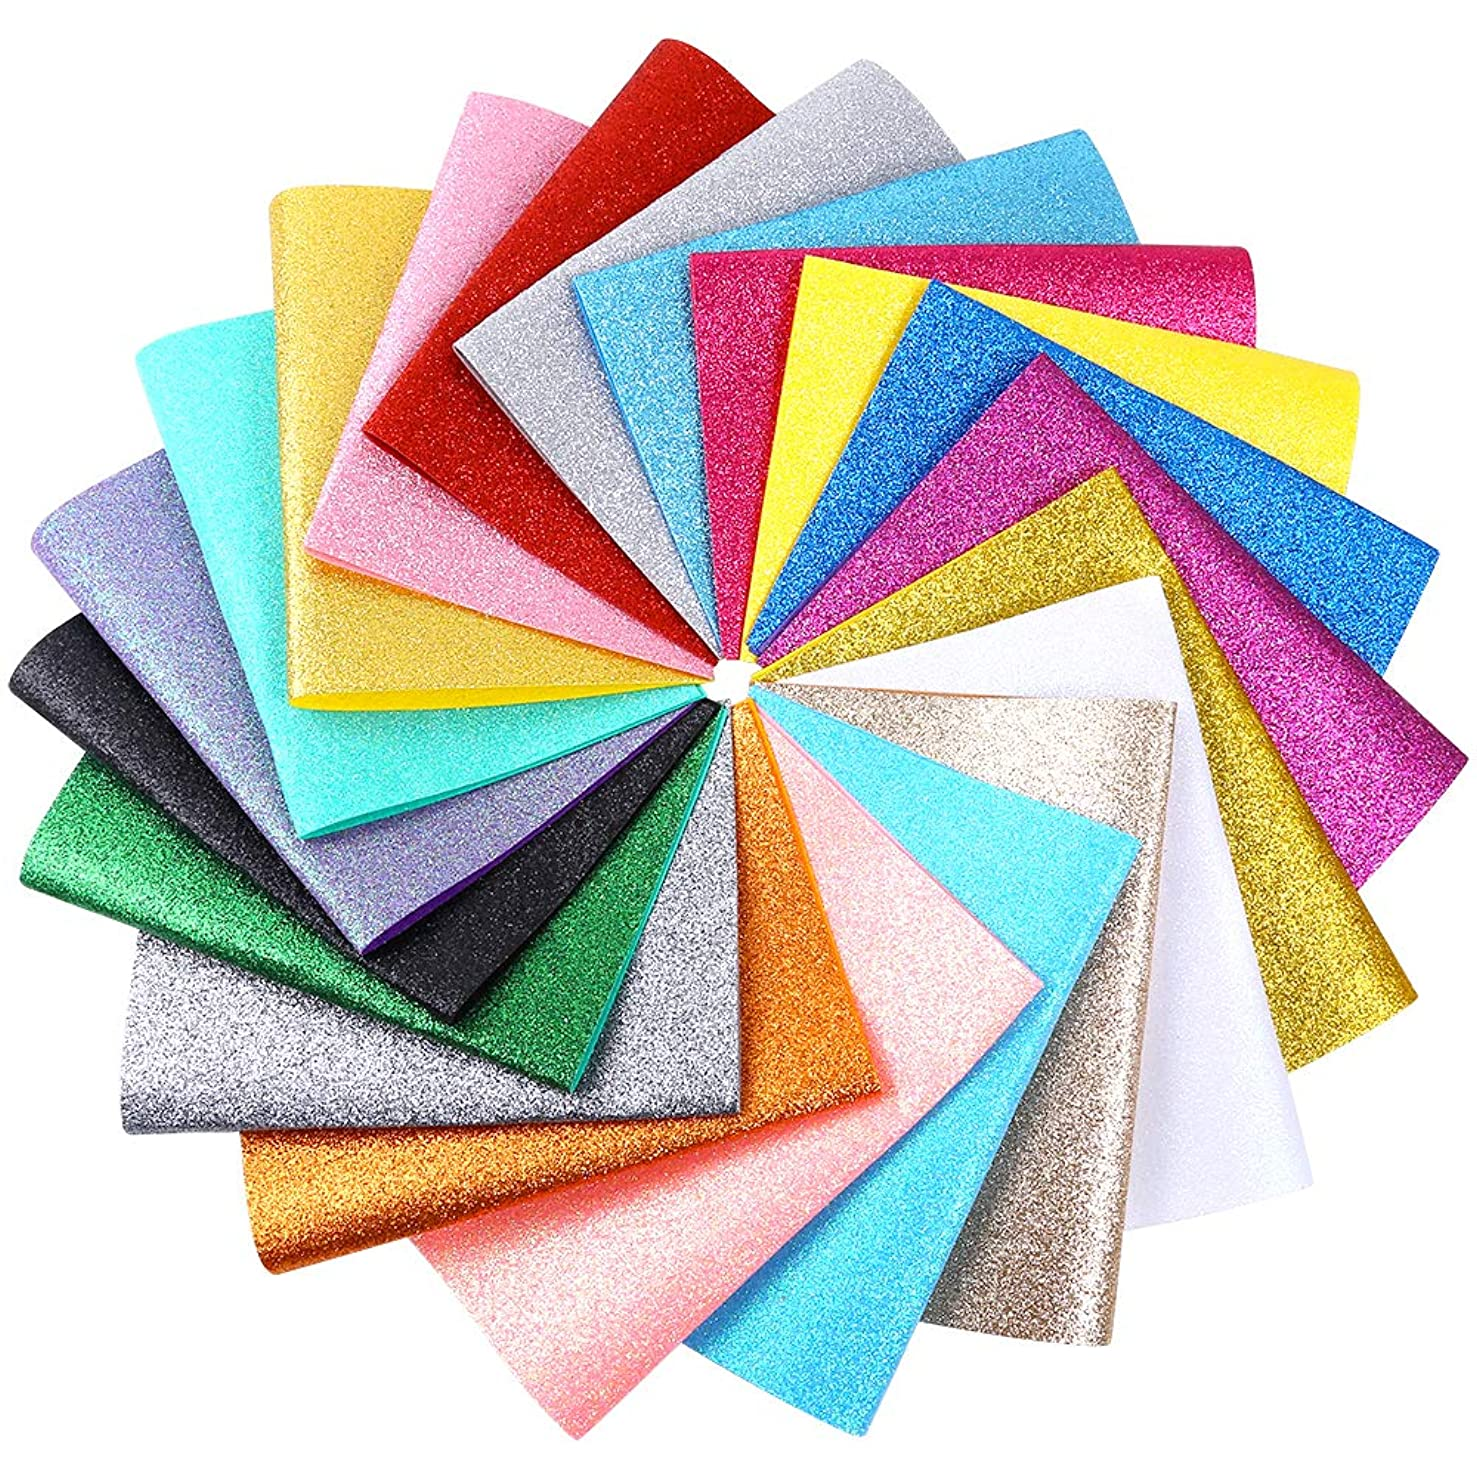 Caydo 20 Pieces 20 Colors Shiny Superfine?Glitter Fabric Glitter Felt Sheets for Bag Making, Hat Making, Hair Crafts Making, Jewelry Making, Sewing and Other Decorations